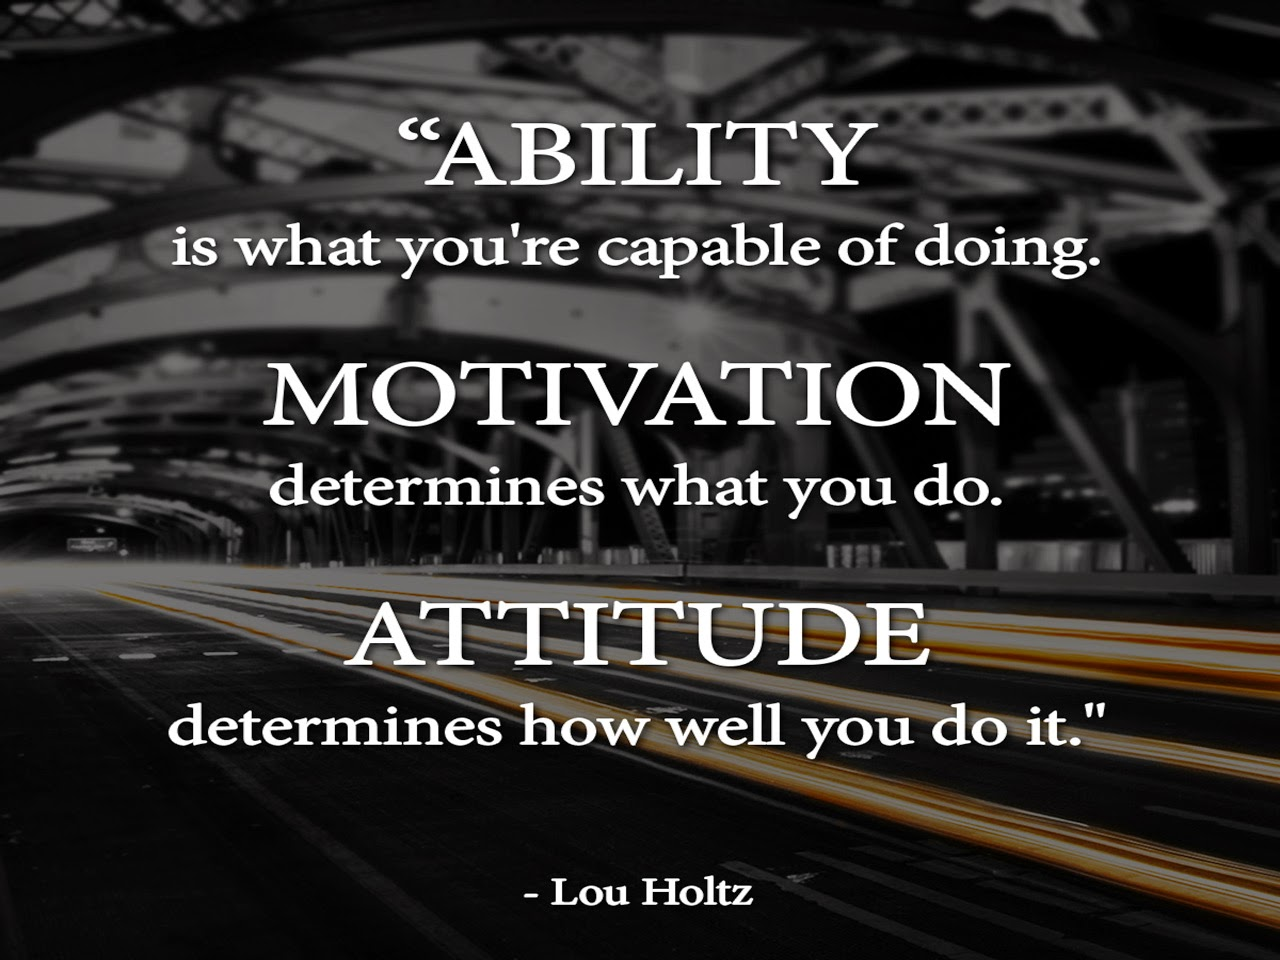 Quotes And Sayings: Motivational Quotes And Sayings For Success With